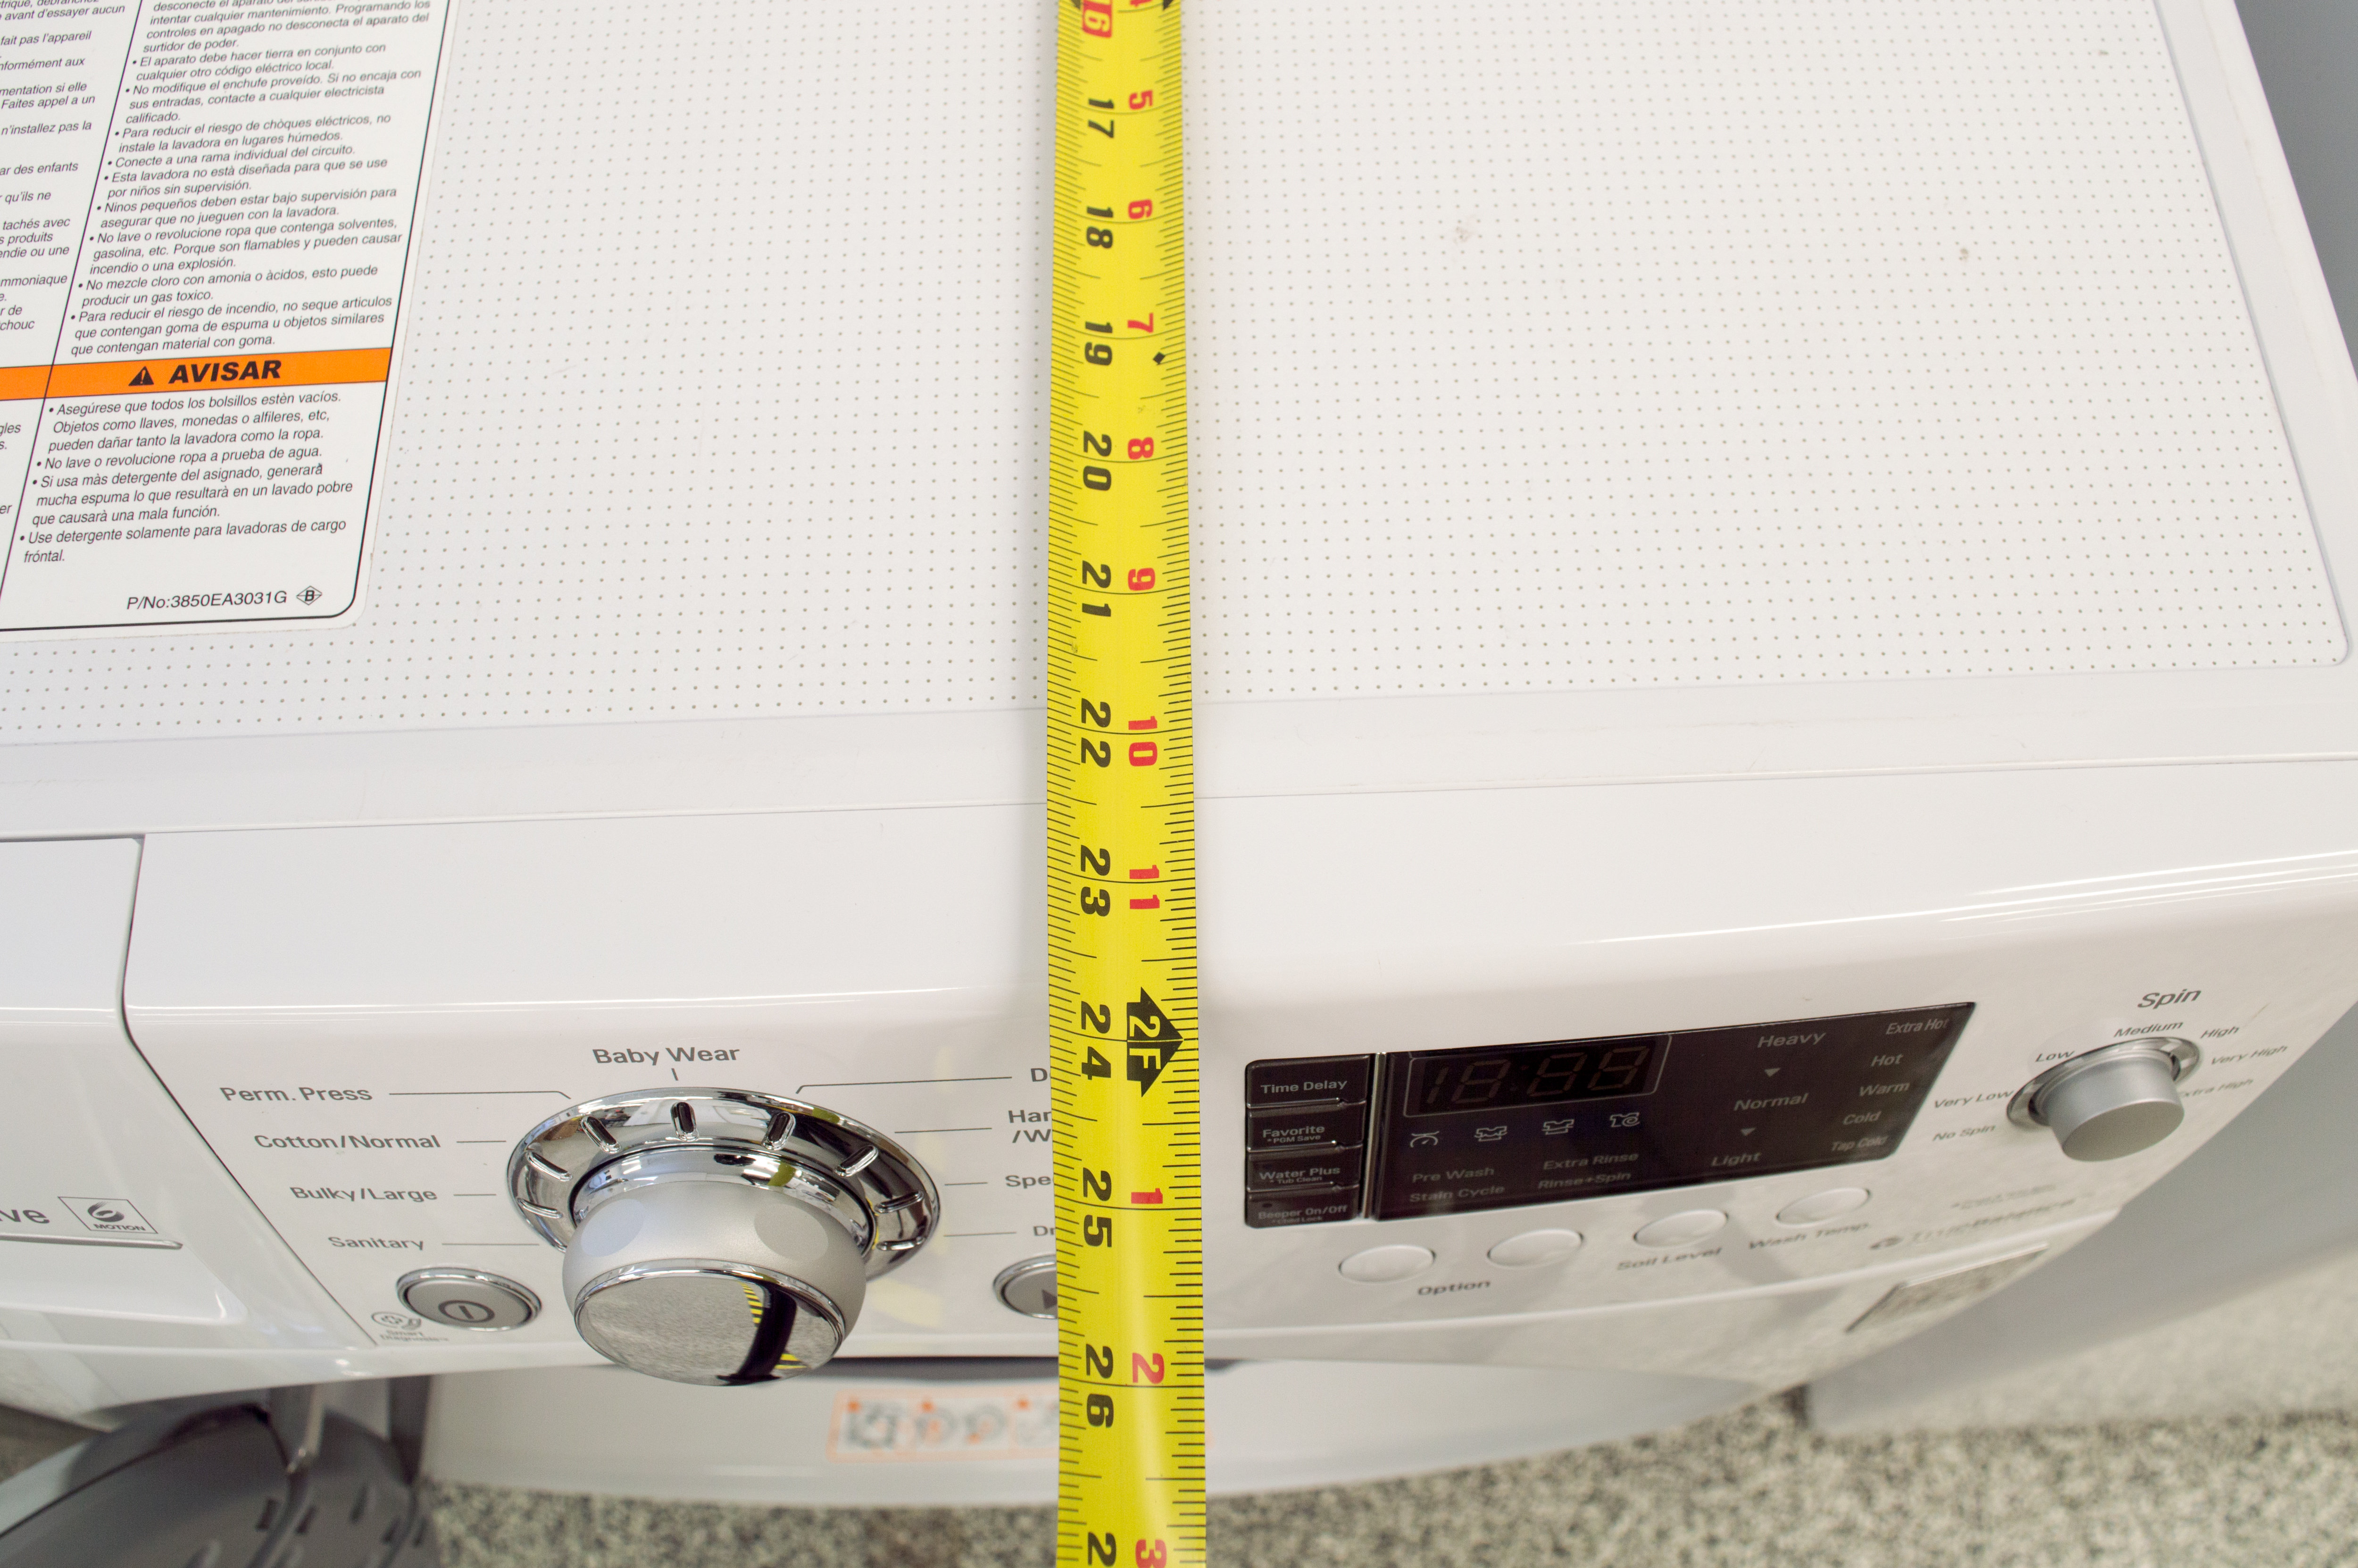 This compact washer is just 24-inches wide, 33-inches tall, and 25-inches deep.